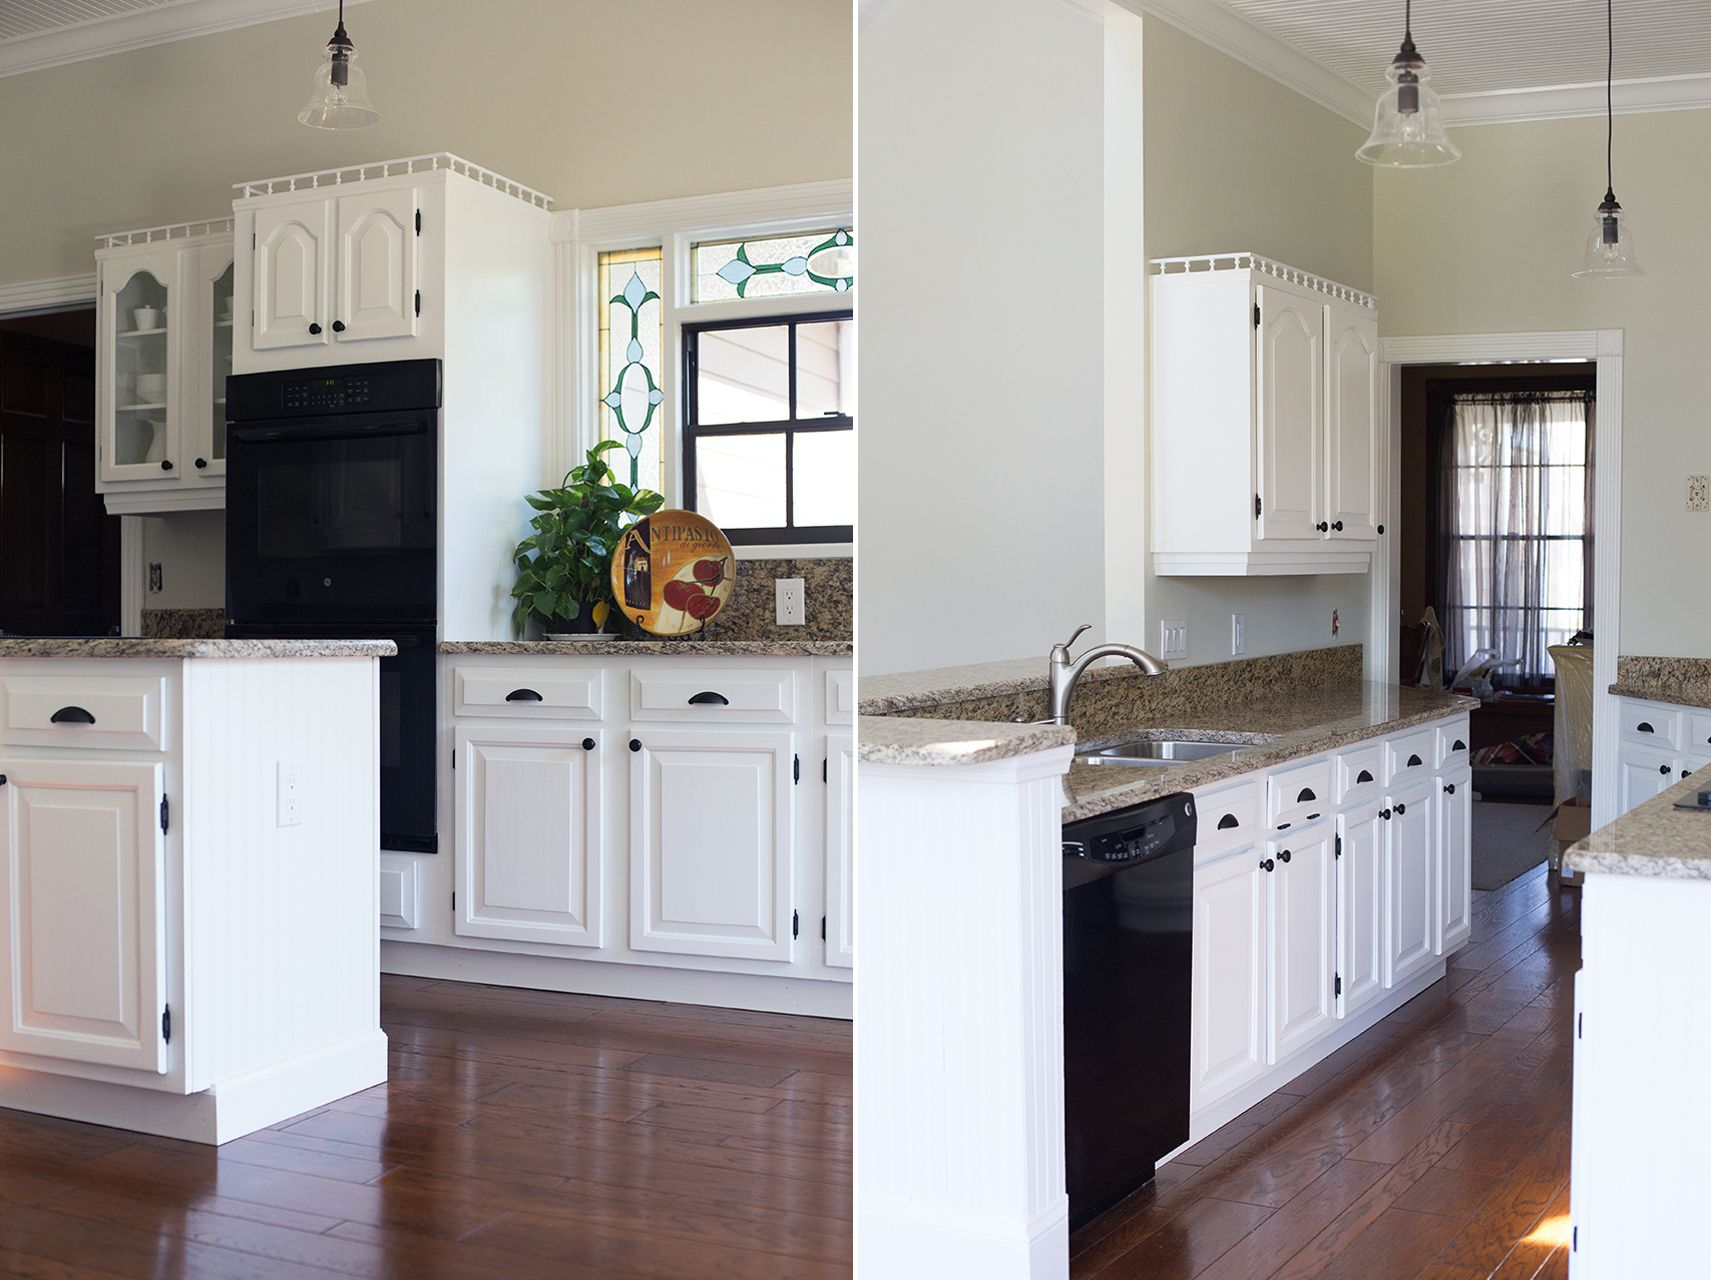 Kitchen | Kitchens, Painting kitchen cabinets and House